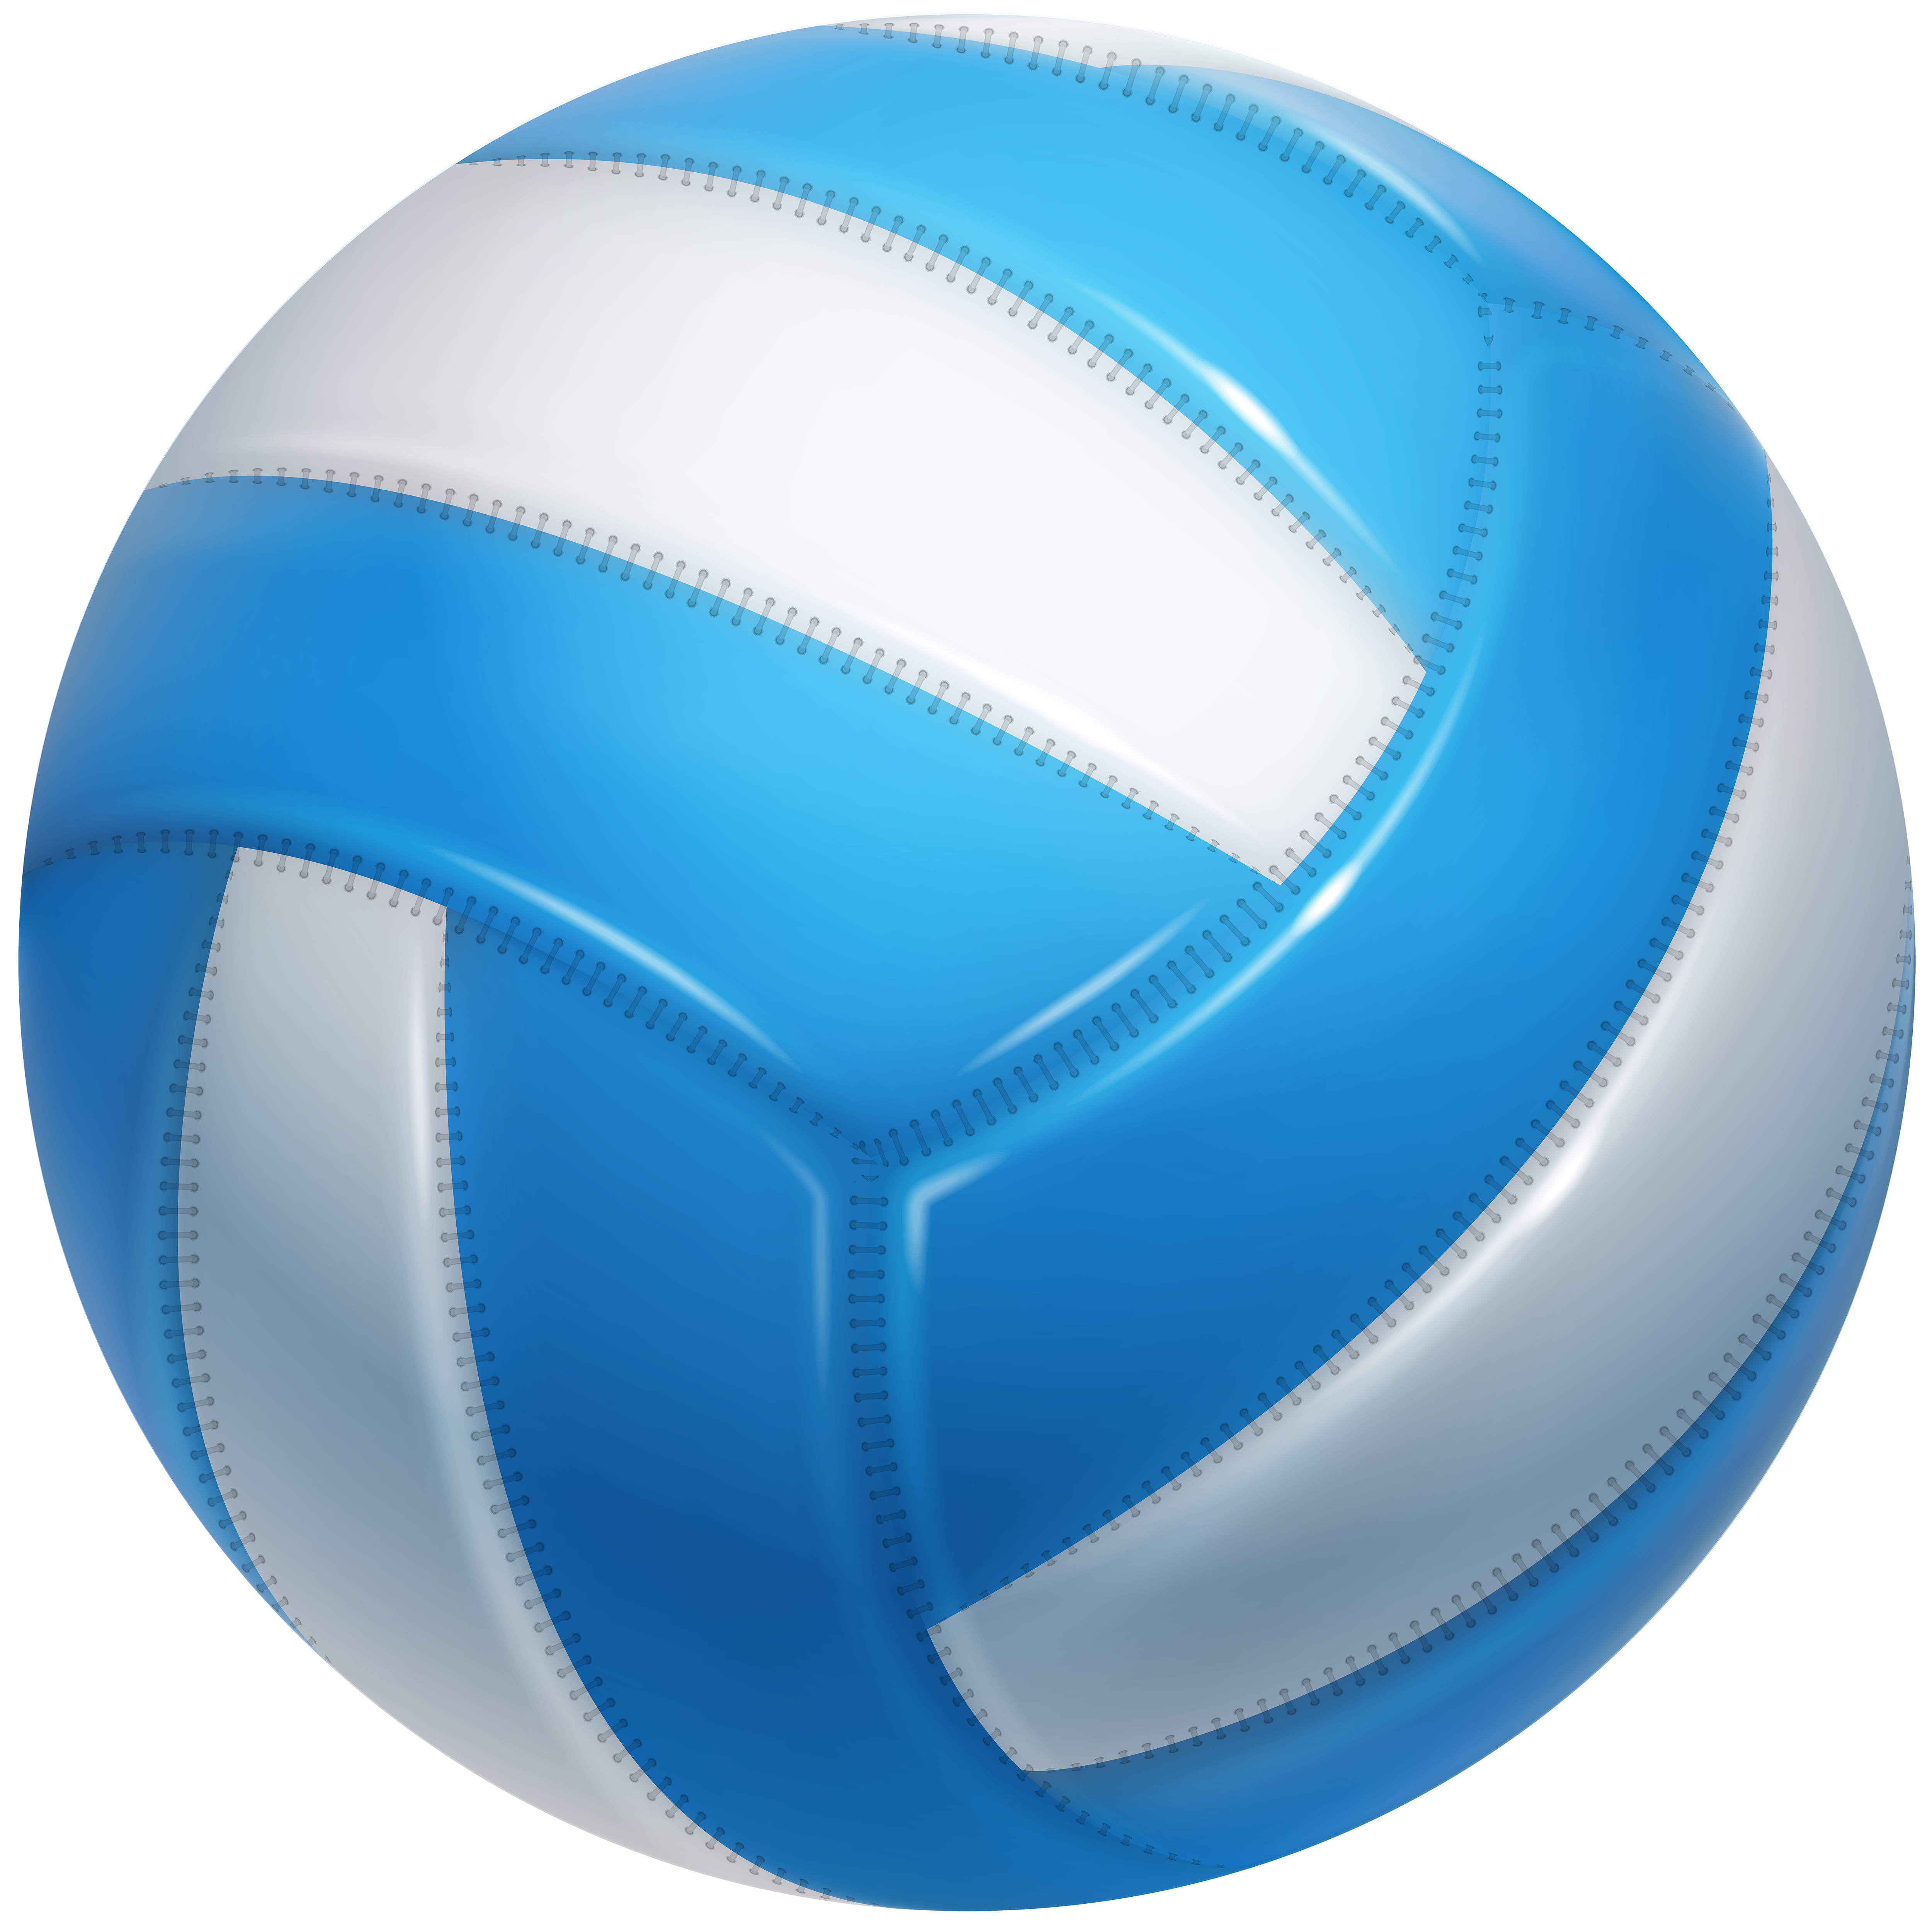 Ball transparent png clip. Clipart hearts volleyball